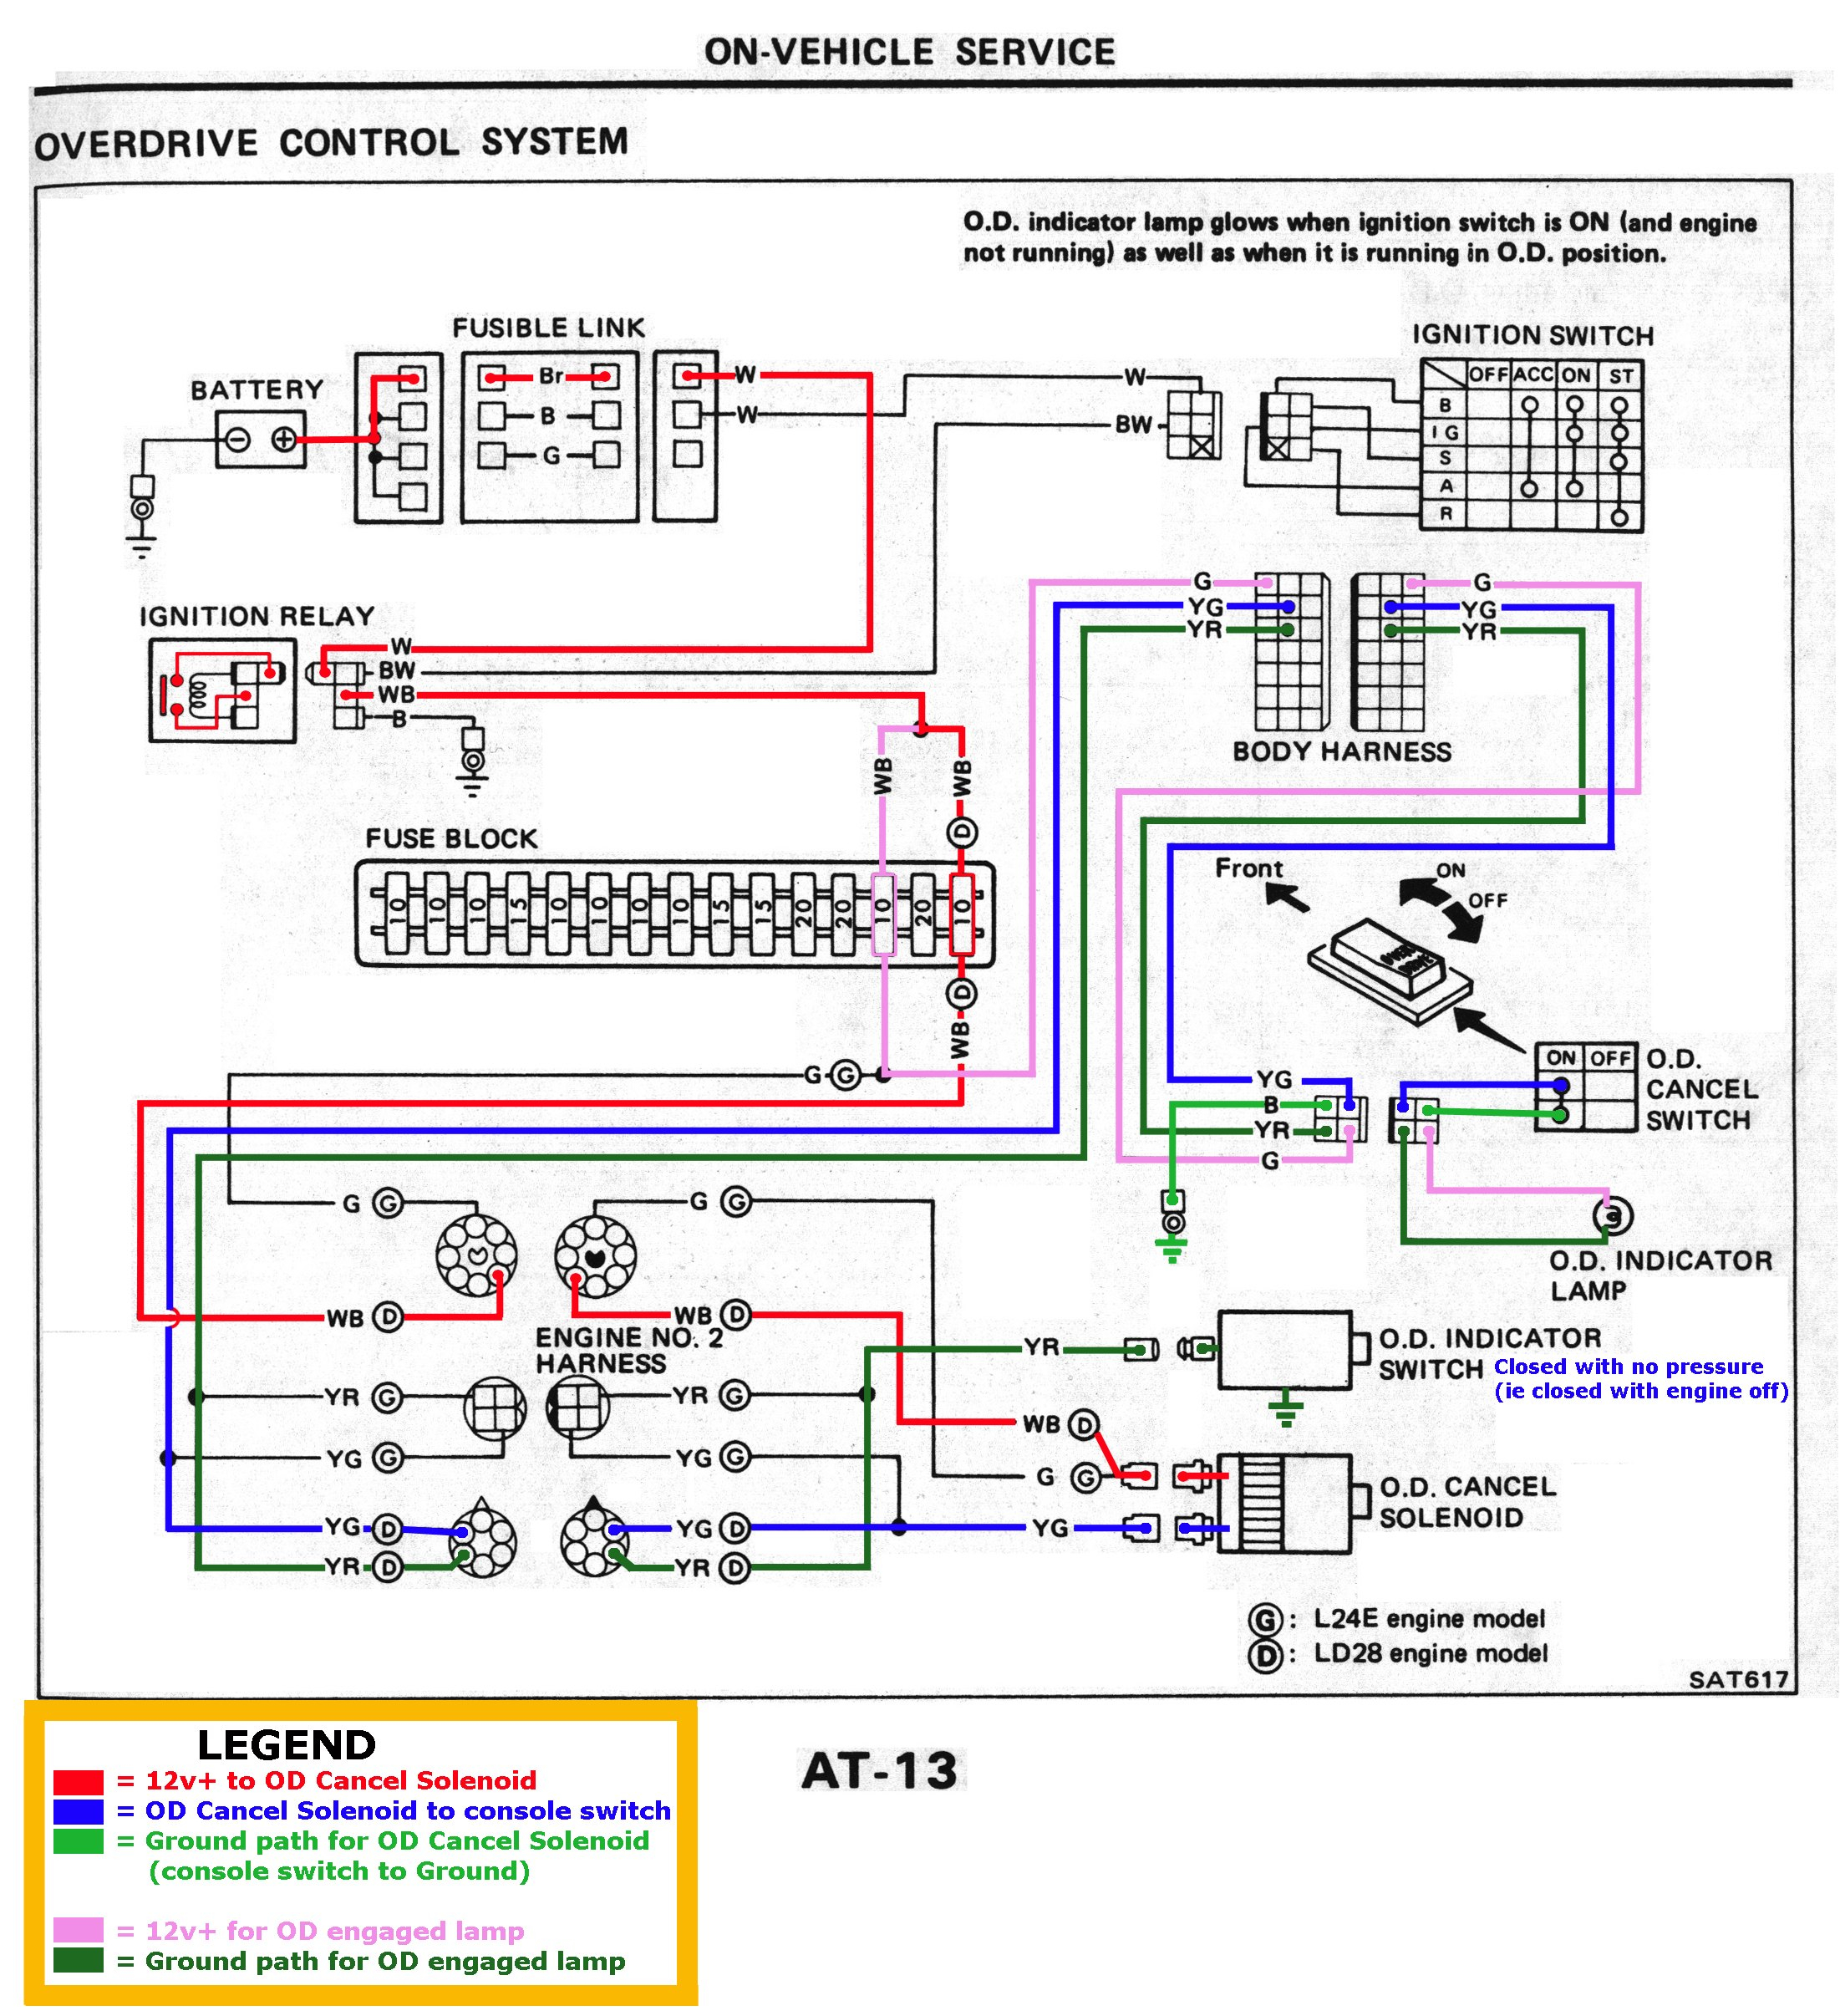 scooter alarm wiring diagram Collection-Alarm Panel Wiring Diagram Beautiful Wiring Diagram 1983 Nissan Maxima Automatic Transmission 11-n